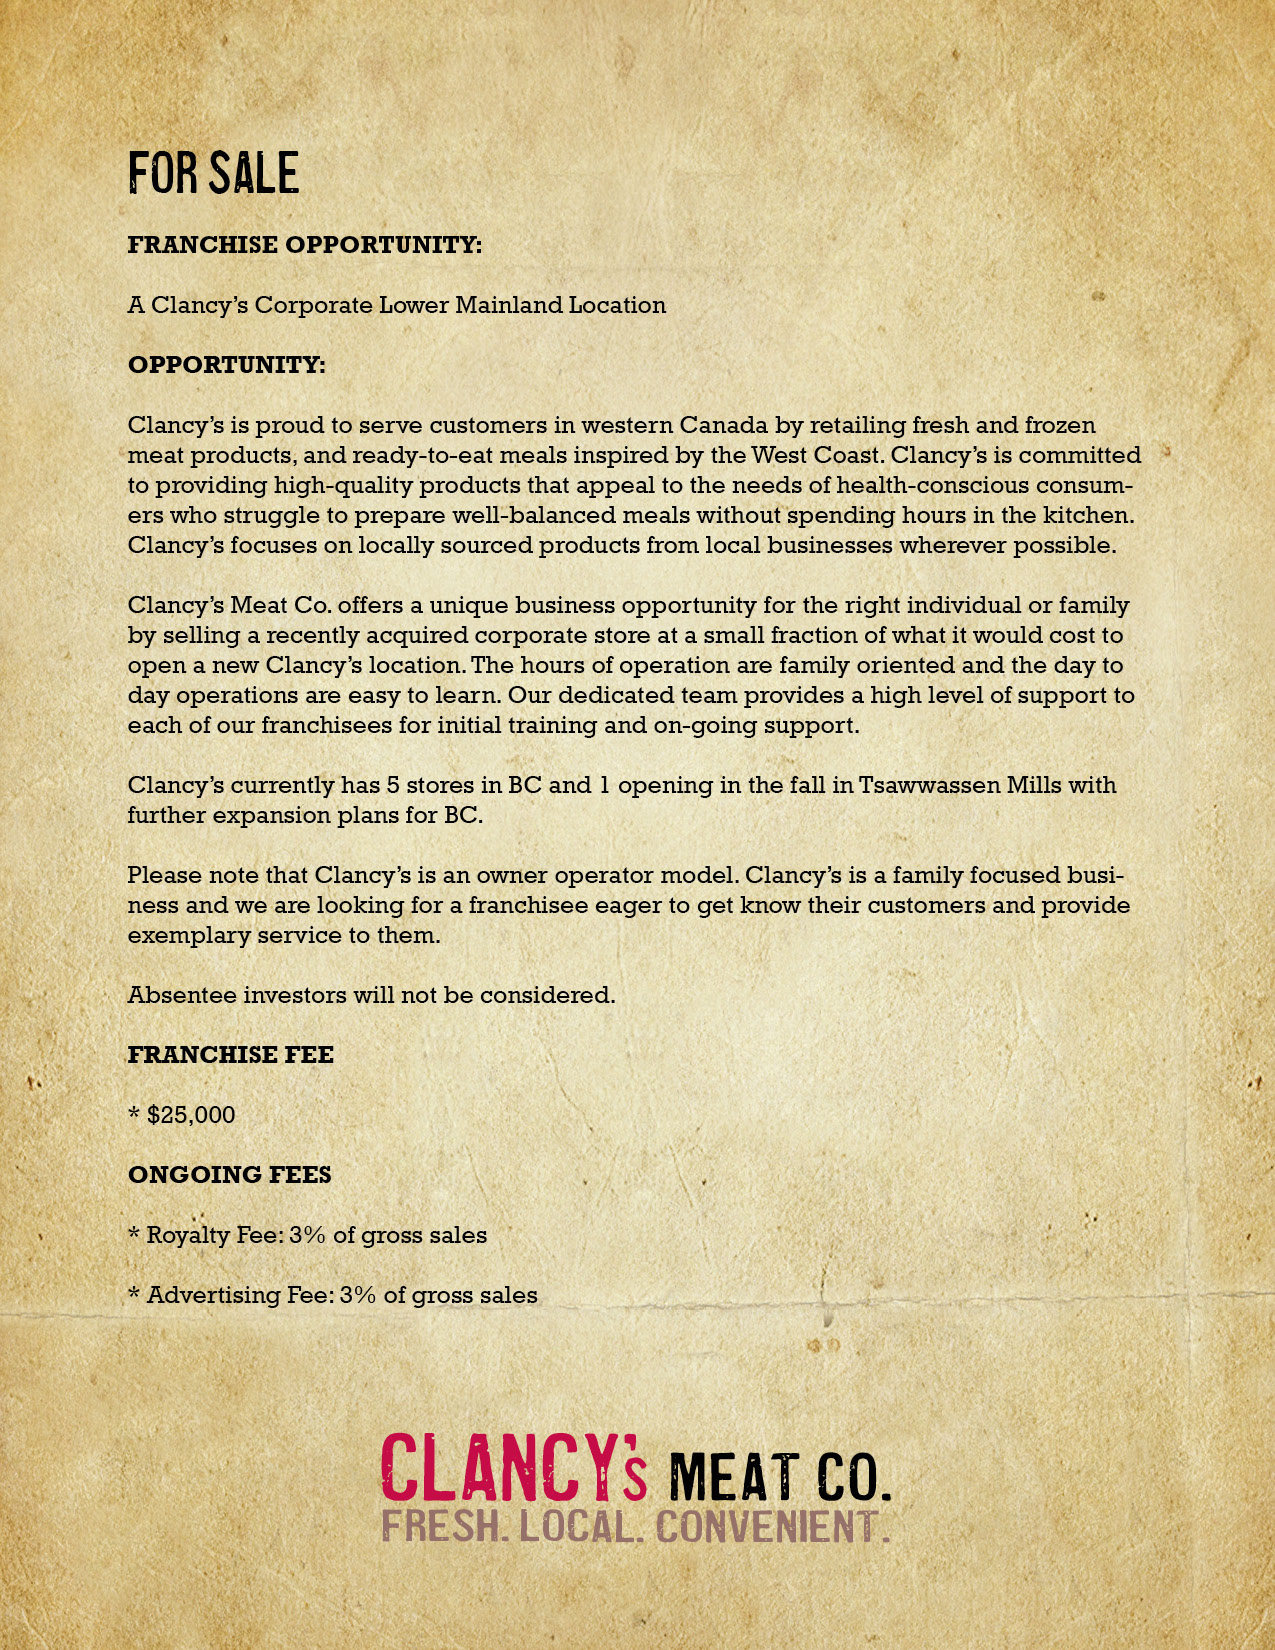 Clancys Franchise For Sale Document Web.jpg